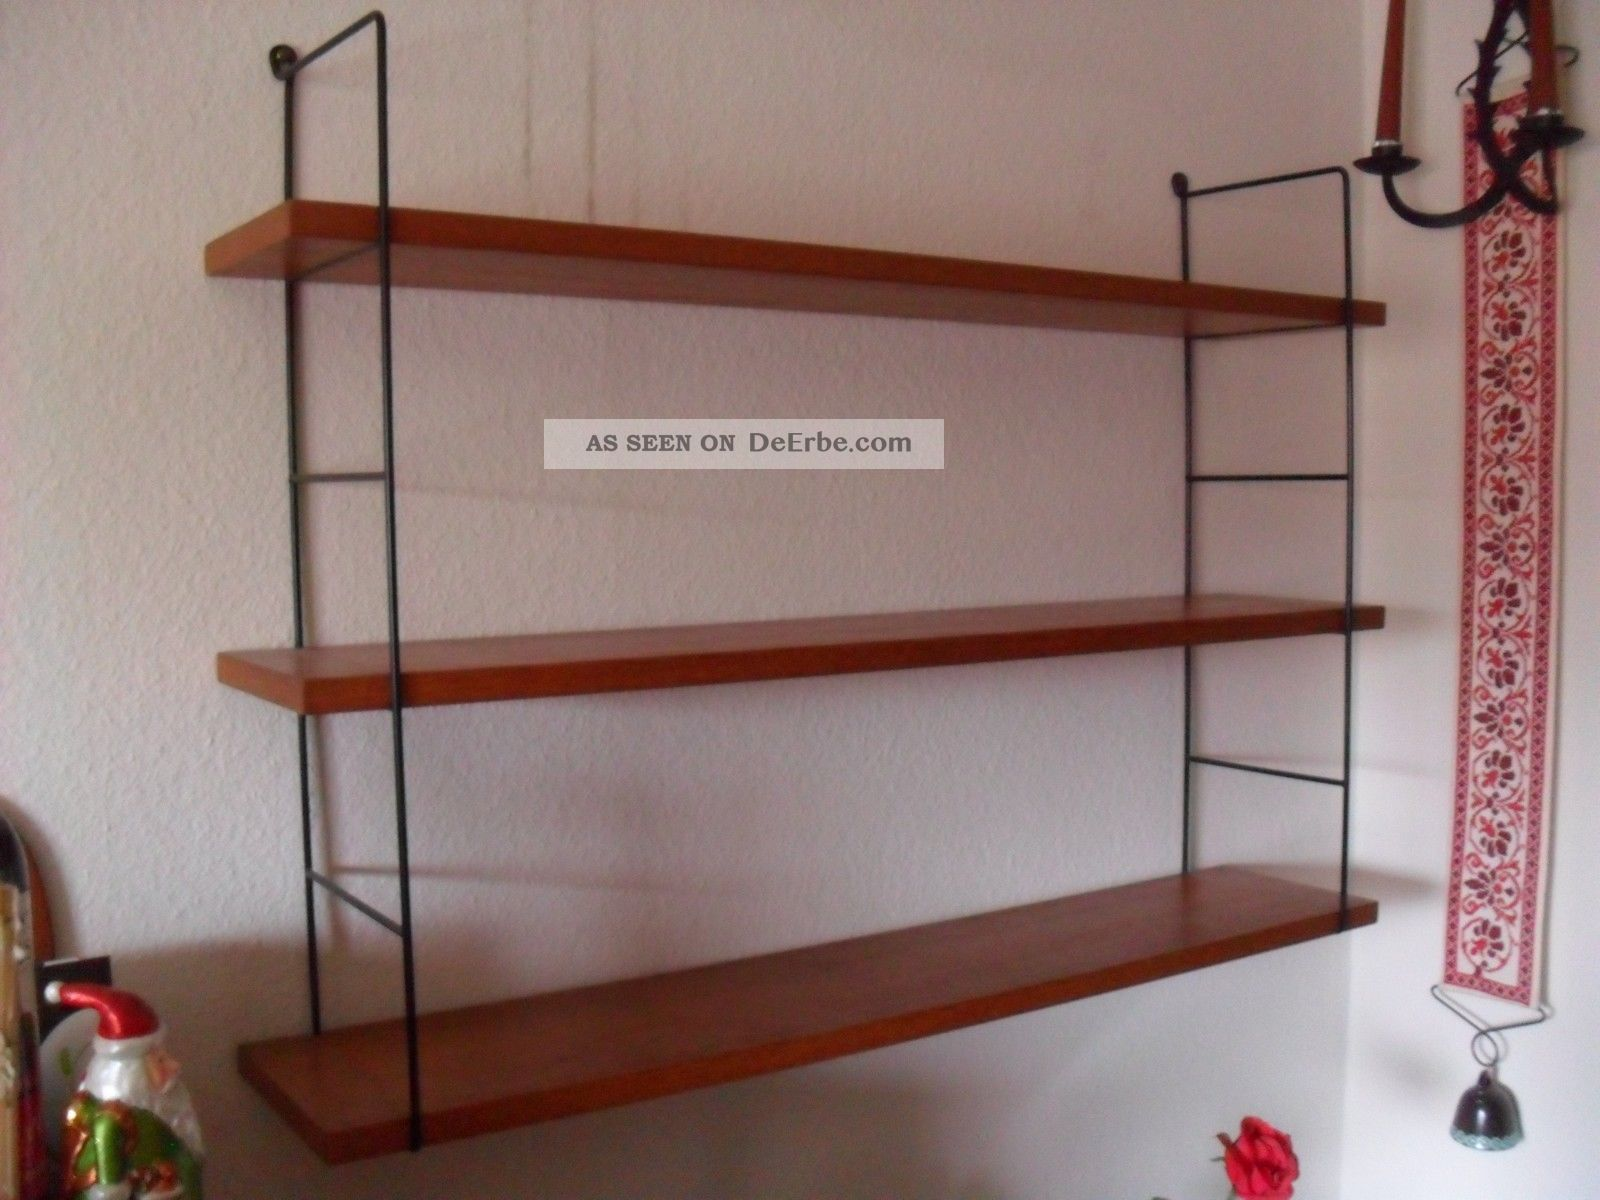 string nisse teak 60s 60er regal system bookshelf system mid century 3. Black Bedroom Furniture Sets. Home Design Ideas